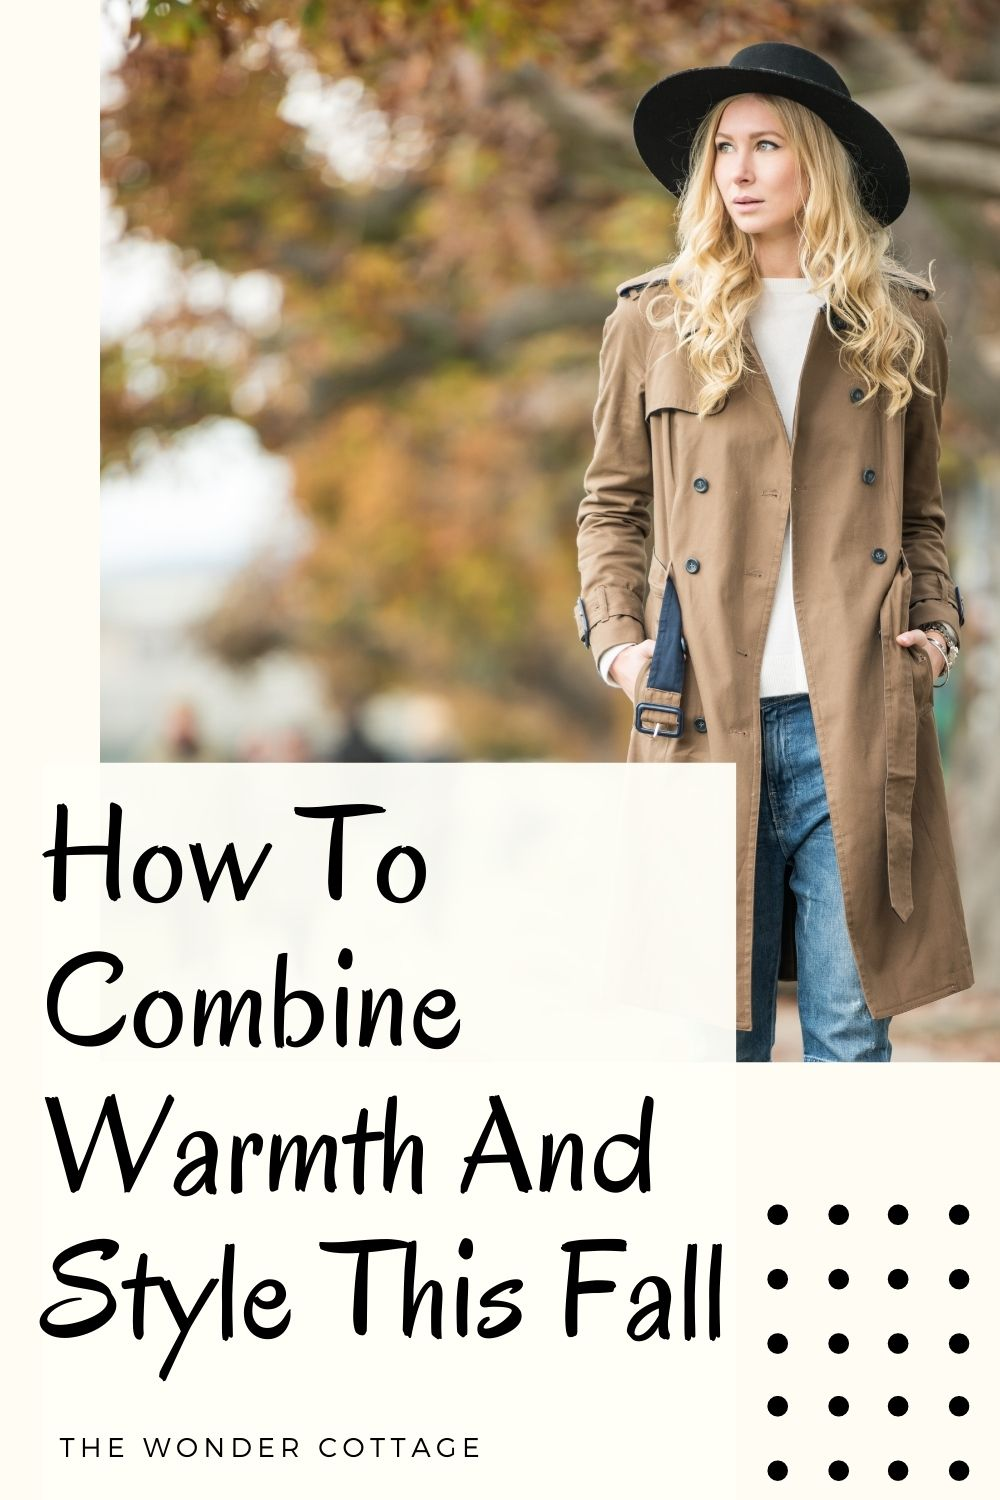 How to combine warmth and style this fall